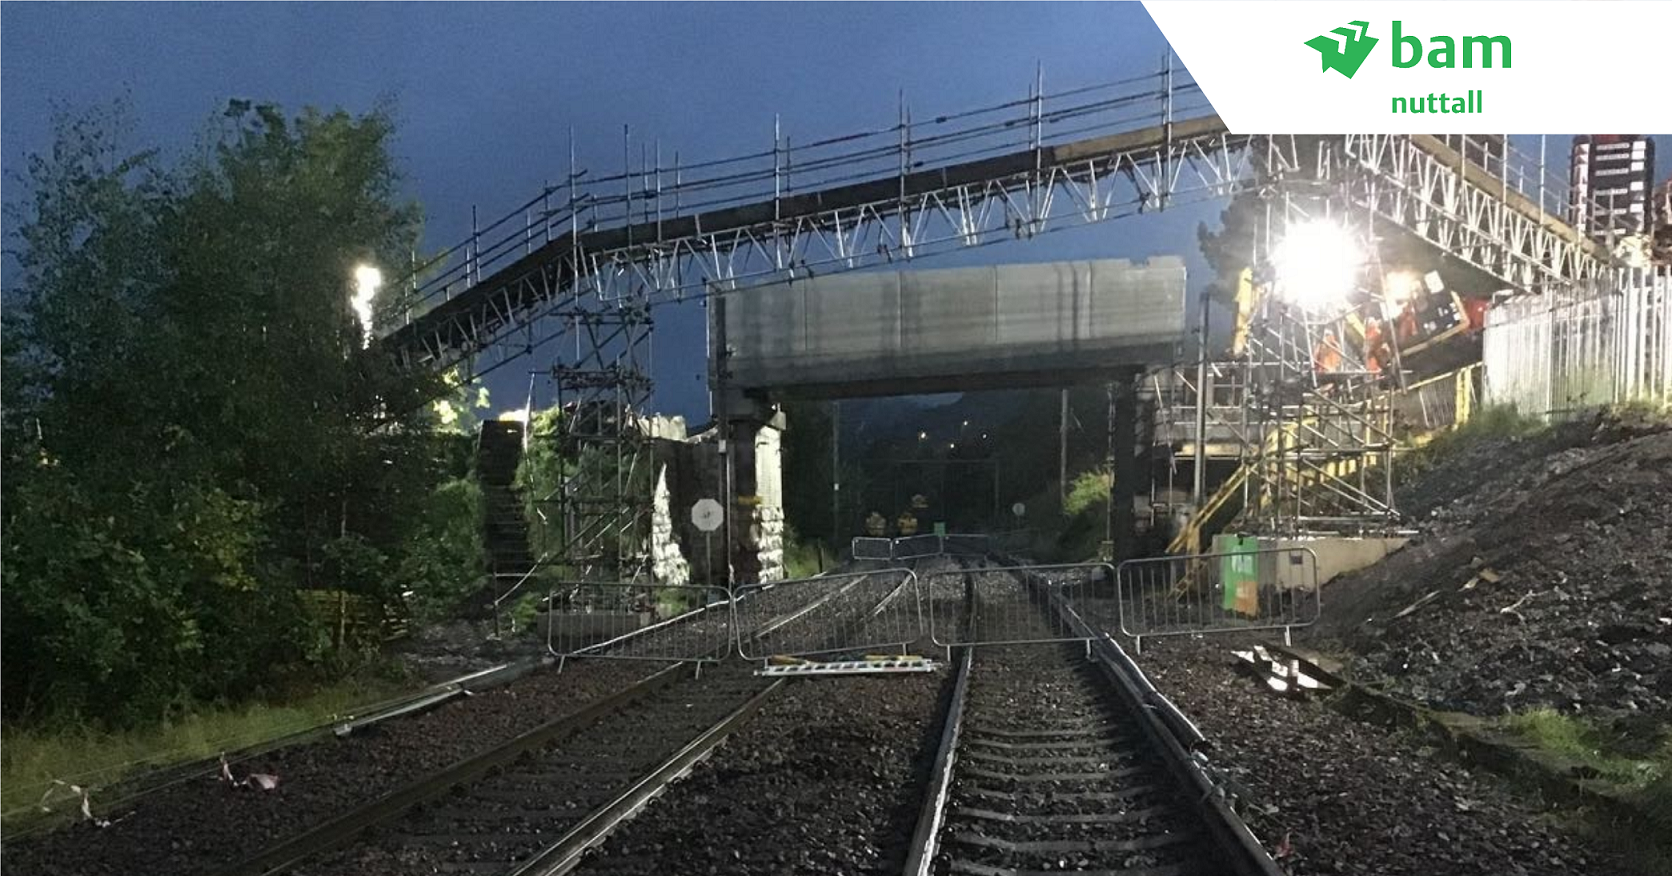 bam-nuttall-Mount-Pleasant-Overbridge-network-rail-project-paperless-construction 1